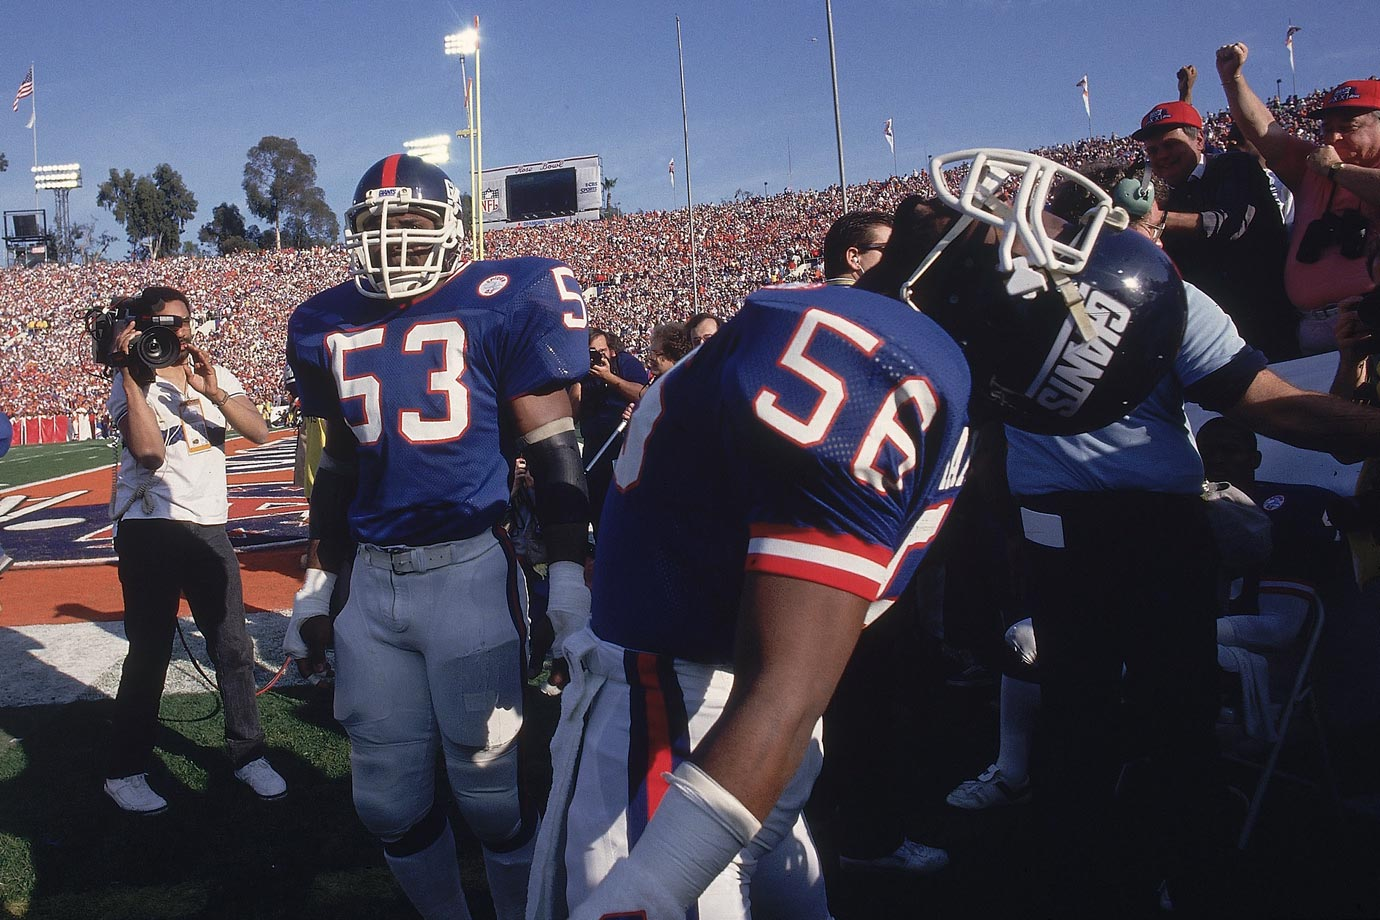 Jan. 25, 1987 (Super Bowl XXI)